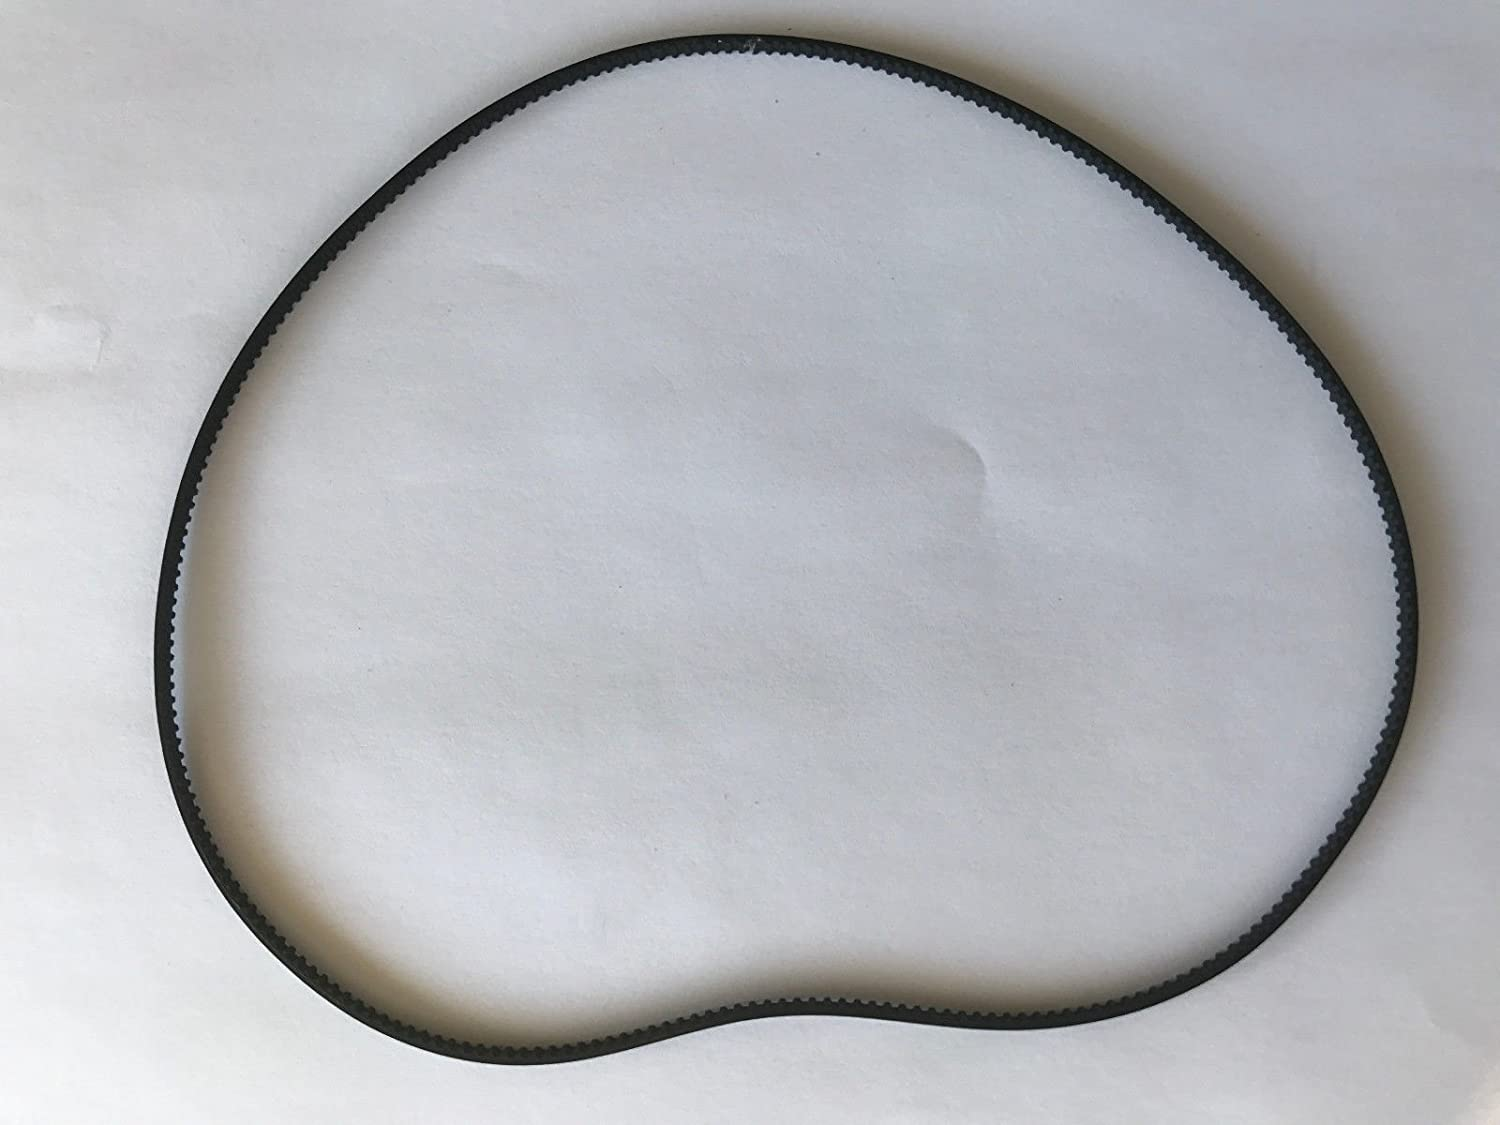 New Replacement Belt for use with American Harvest Jet Stream Oven JS-010